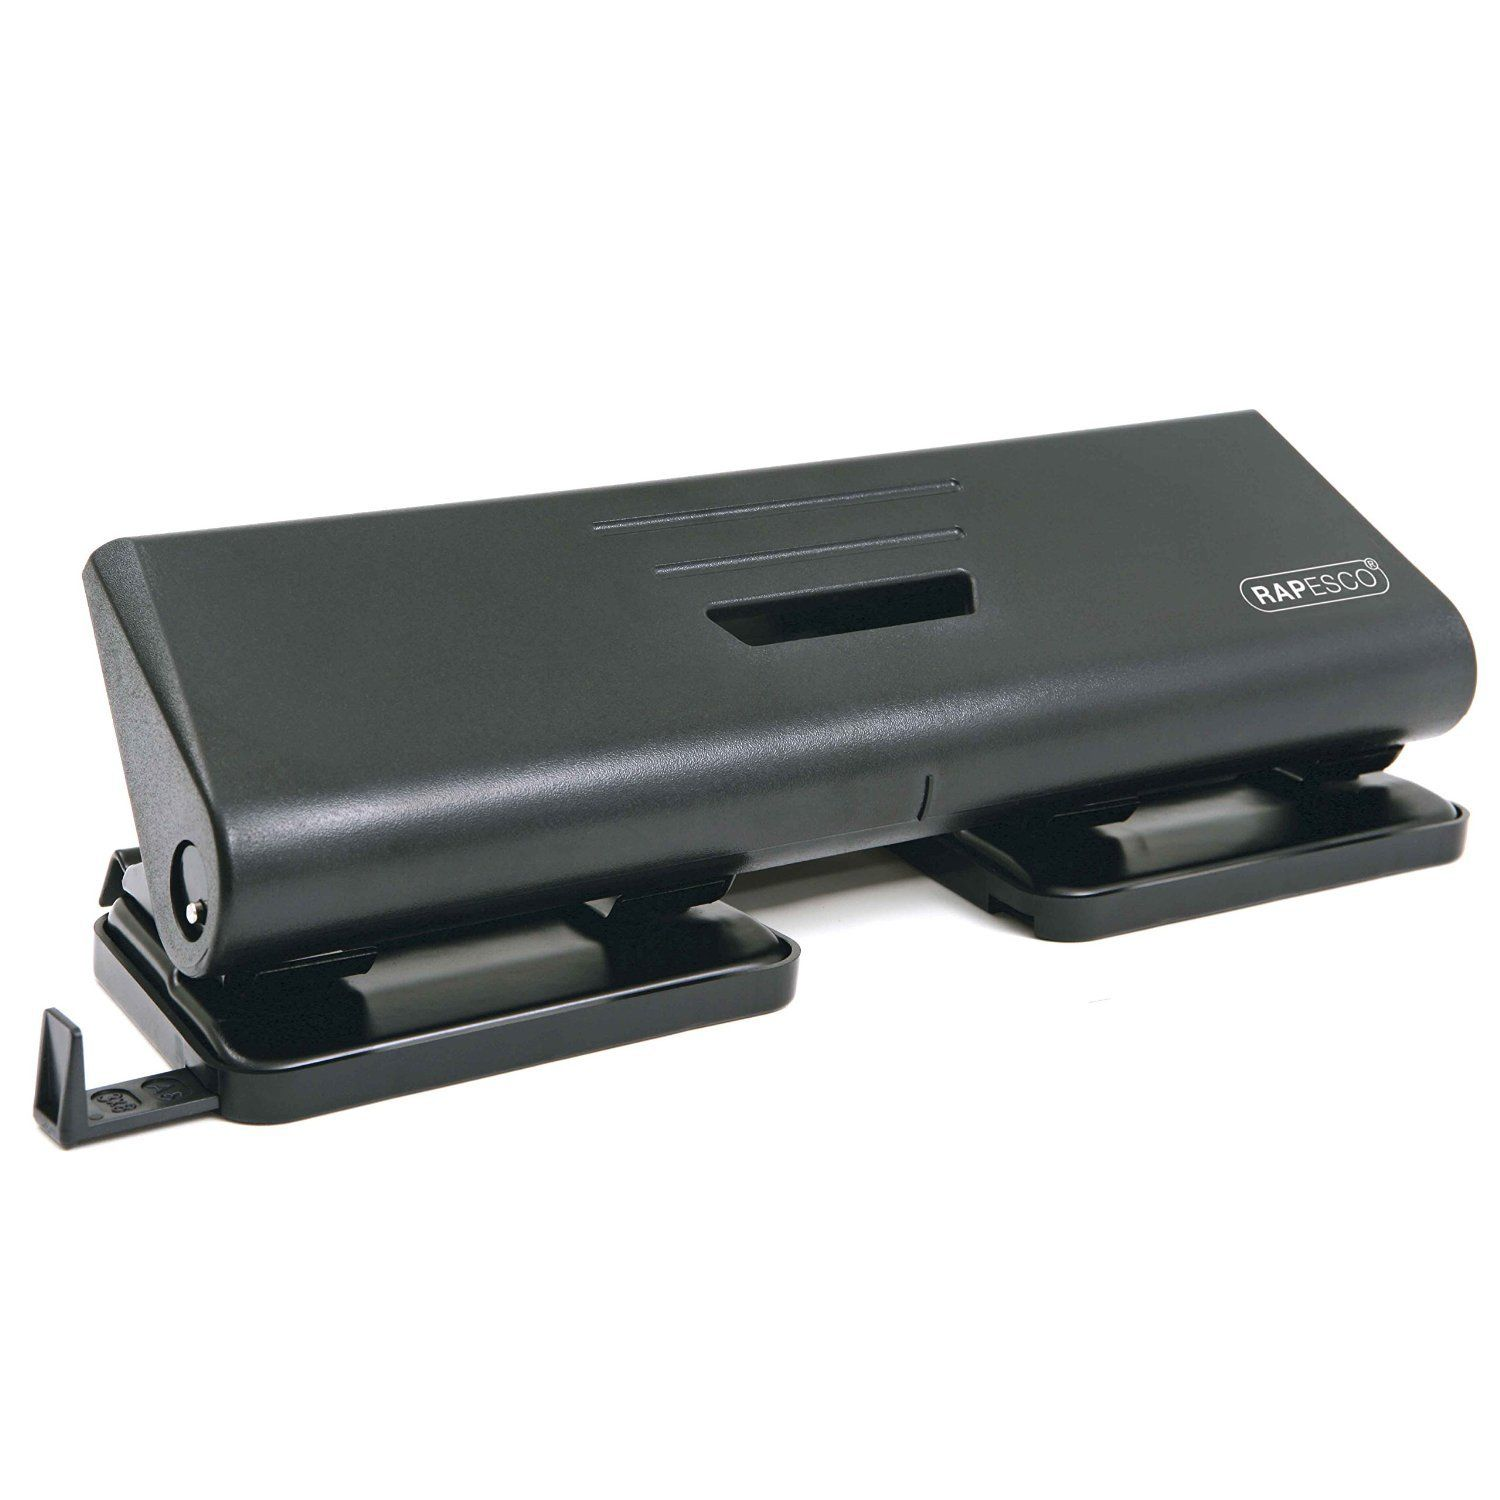 RAPESCO HOLE PUNCH 4-HOLE PUNCH 16 Sheet Capacity- All Metal ...